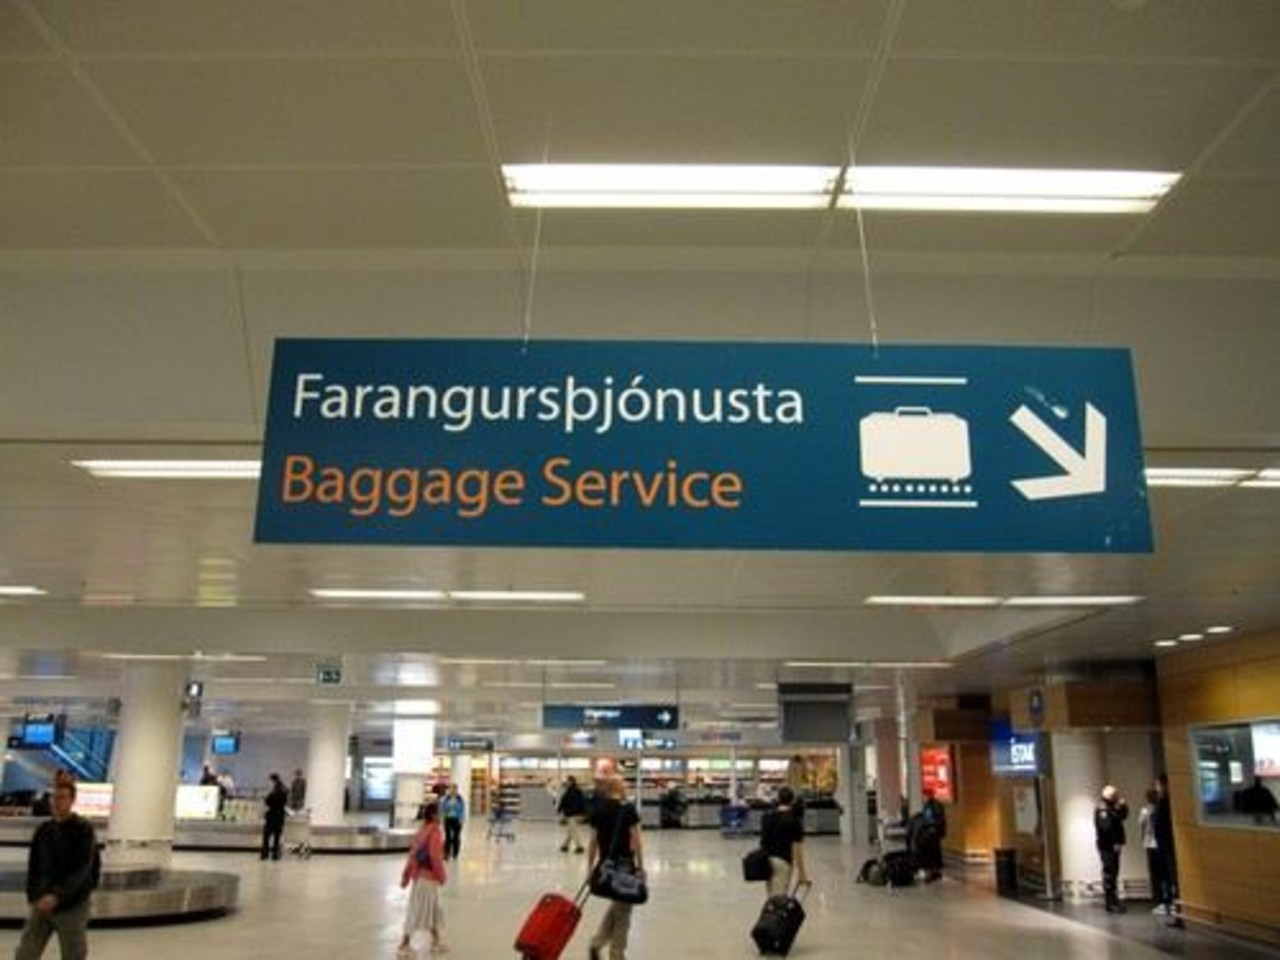 People walking around with suitcases in Keflavik airport in Iceland